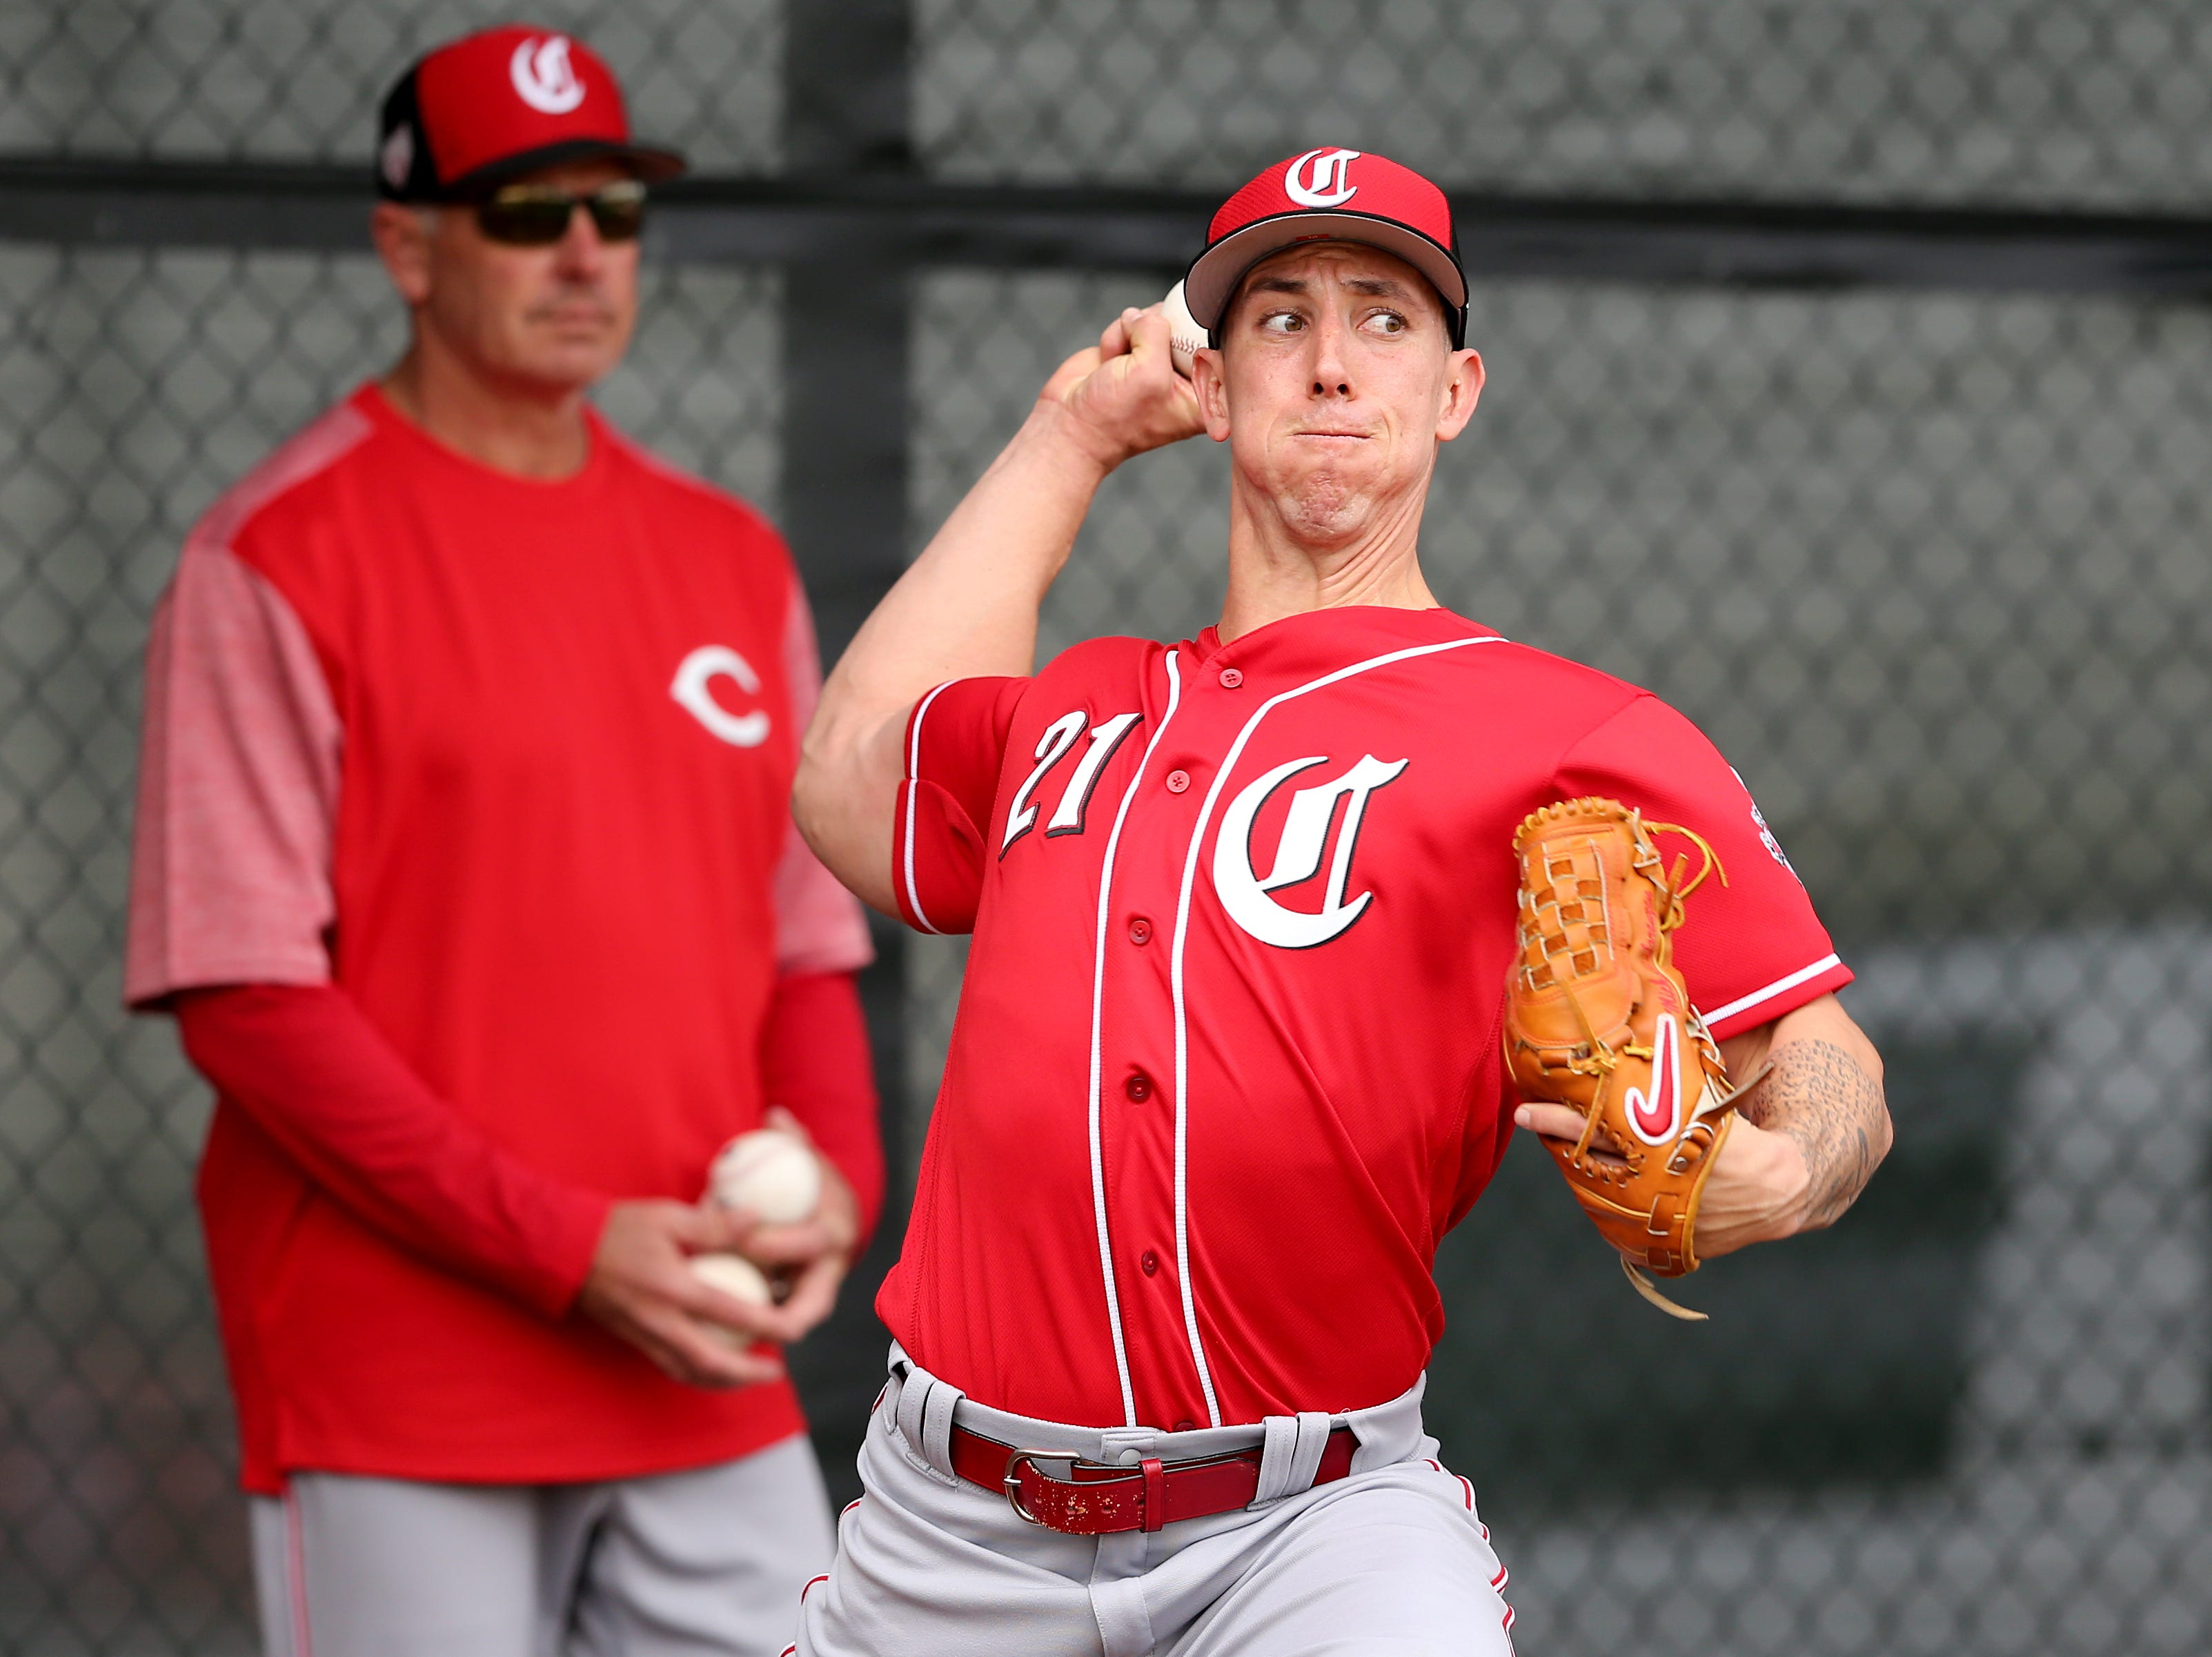 Cincinnati Reds relief pitcher Michael Lorenzen (21) delivers during a bullpen session, Wednesday, Feb. 13, 2019, at the Cincinnati Reds spring training facility in Goodyear, Arizona.